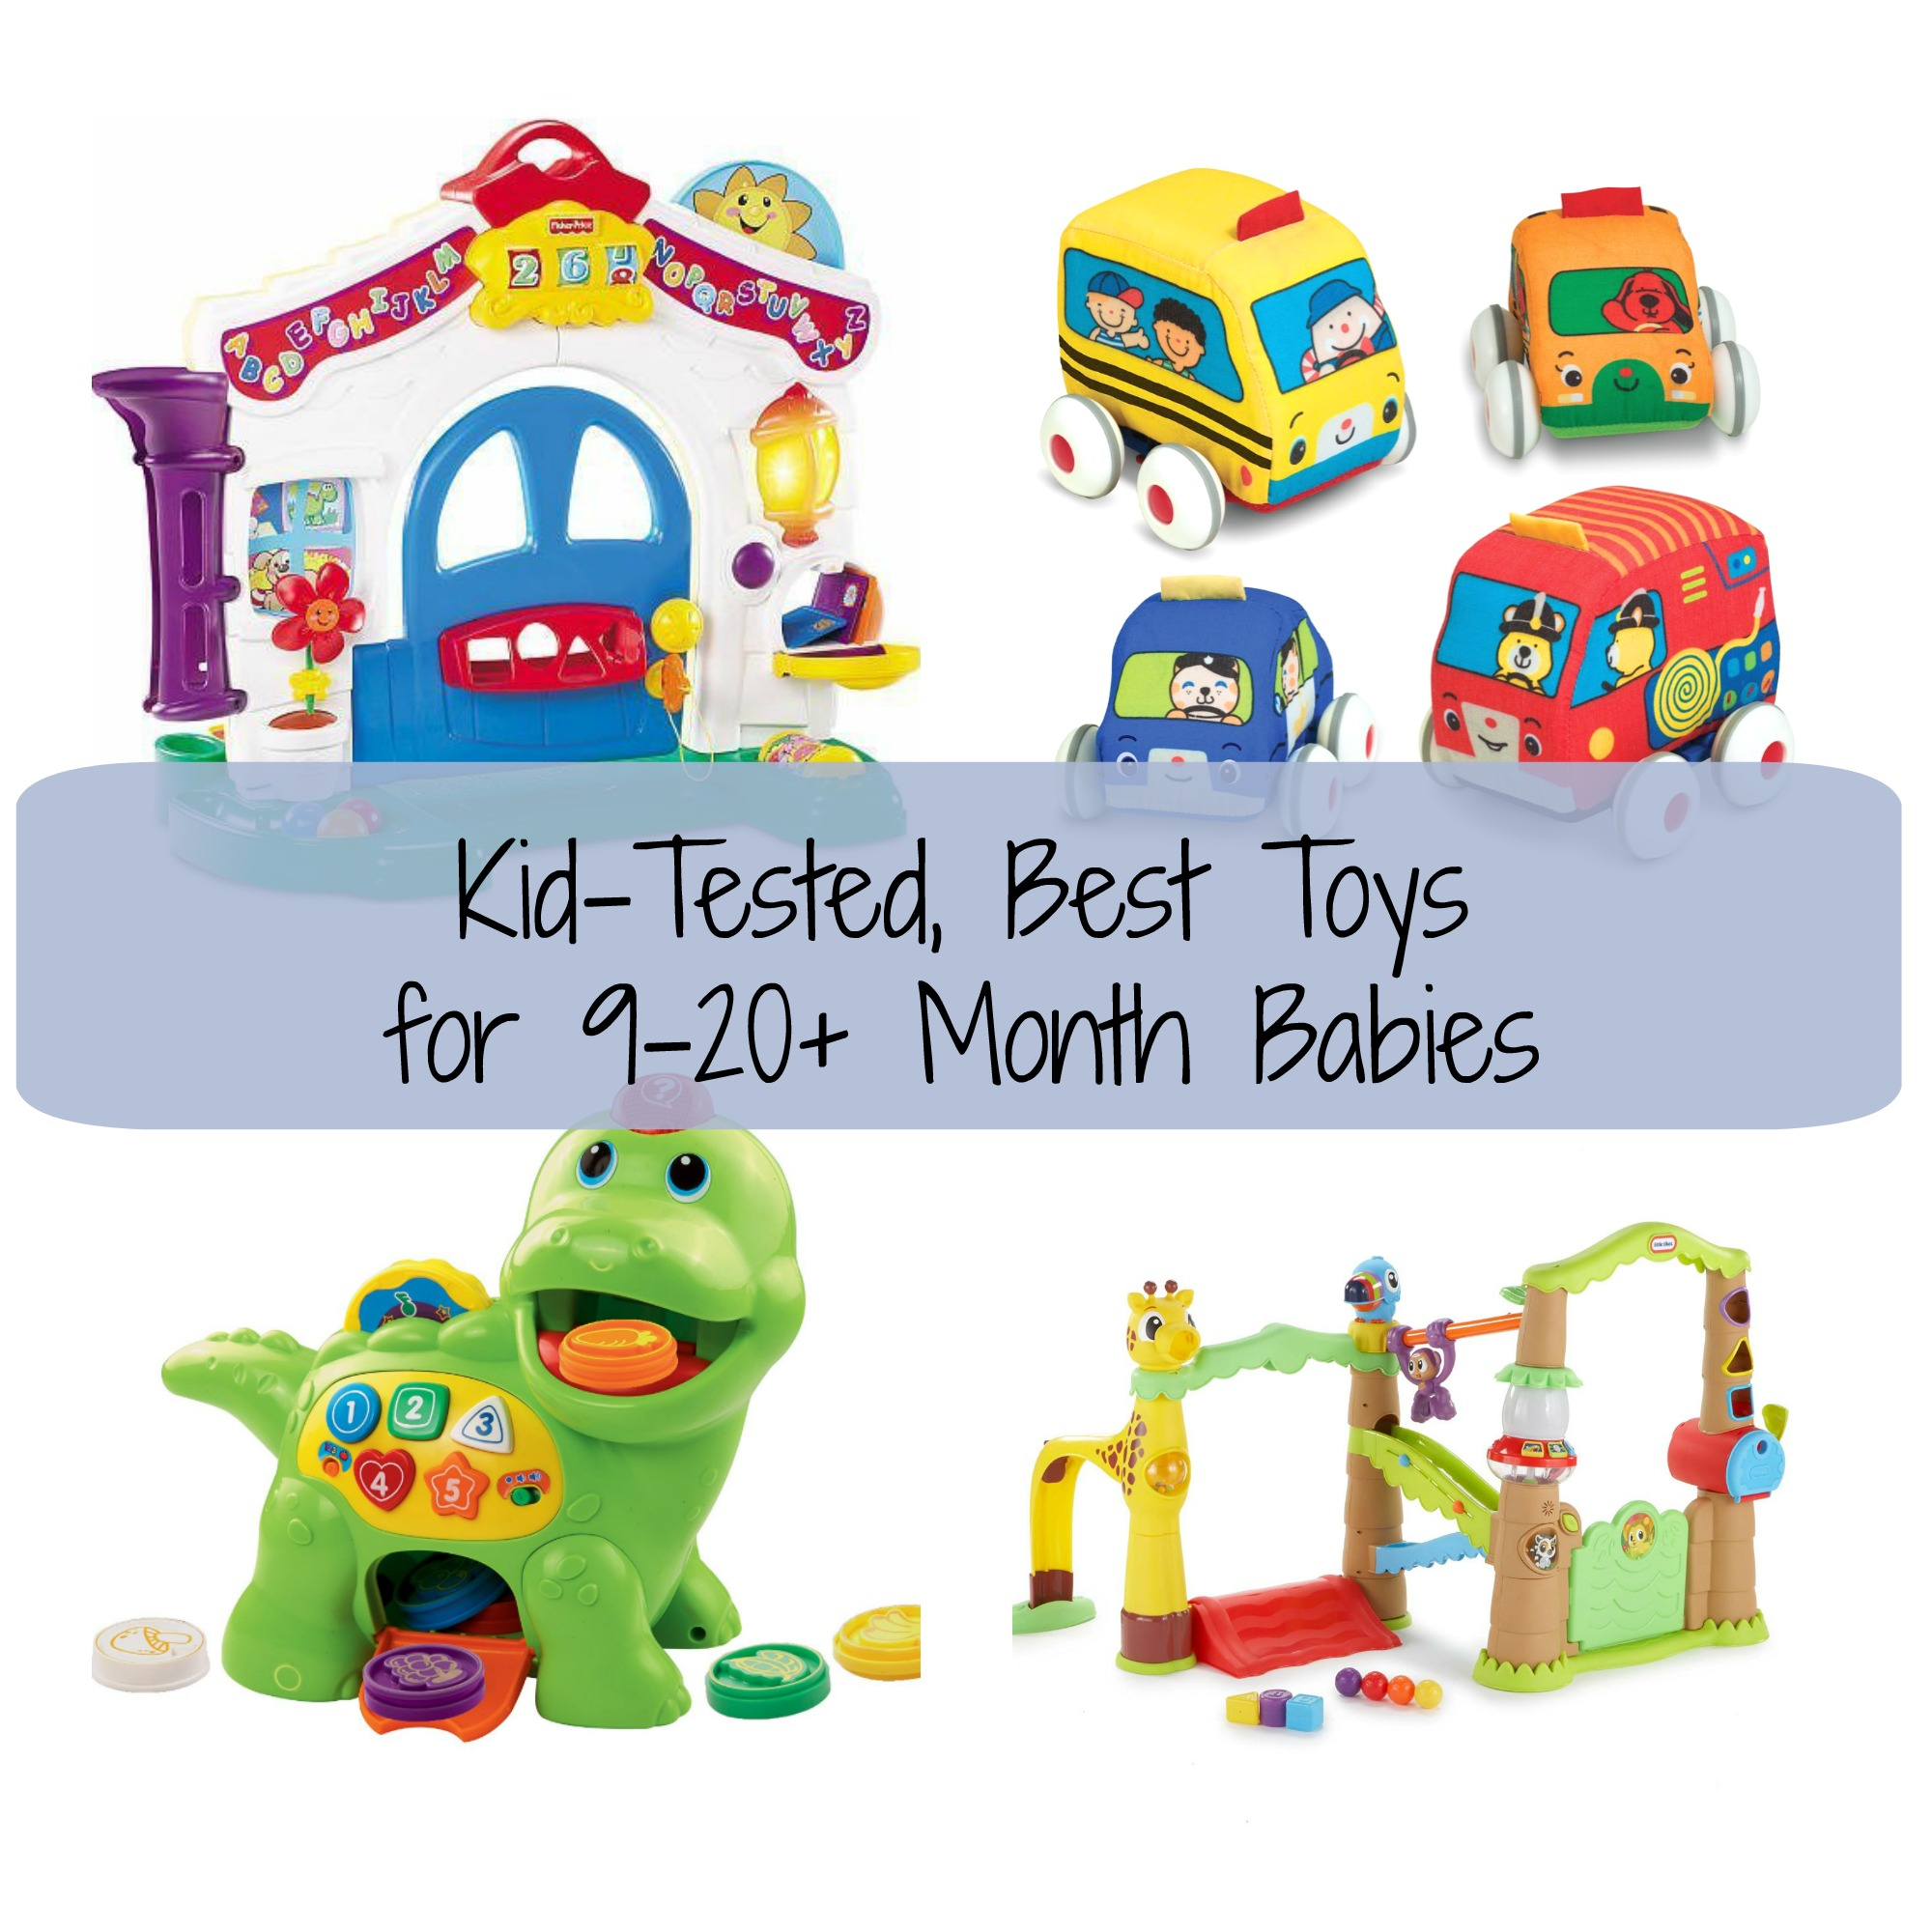 best toys for 9-20+ month babies